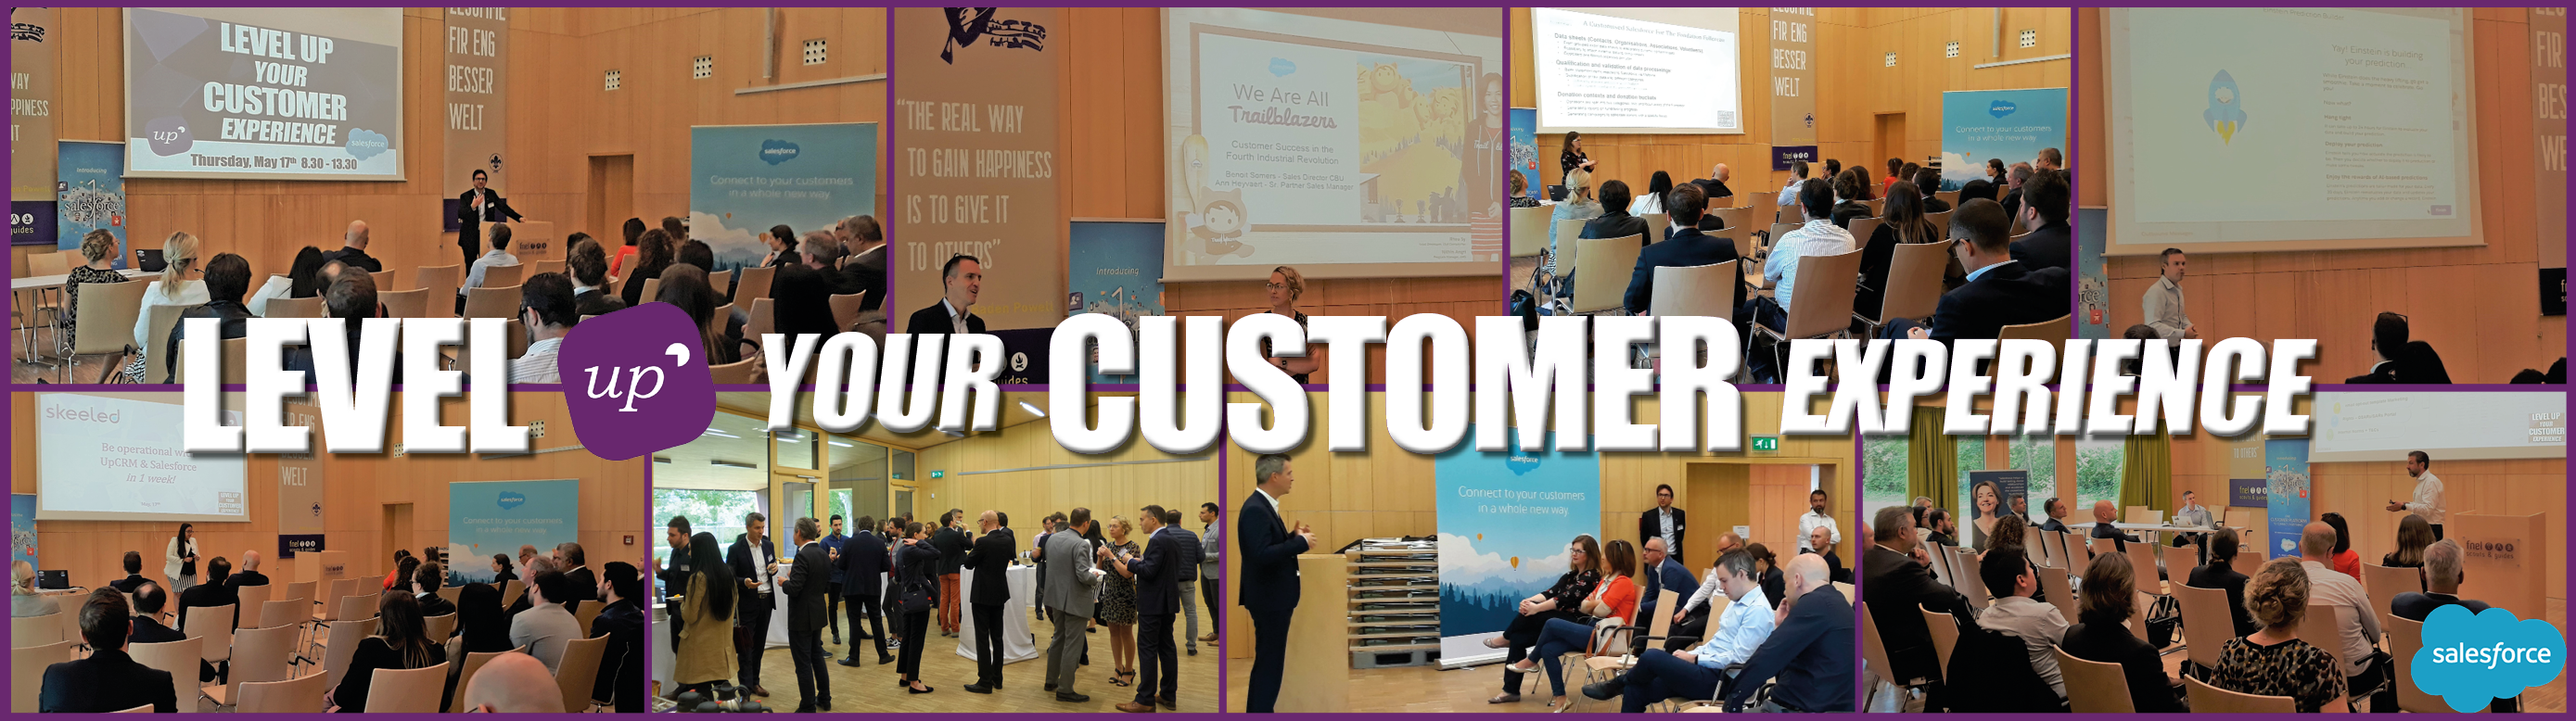 Level Up your Customer Experience with UpCRM & Salesforce